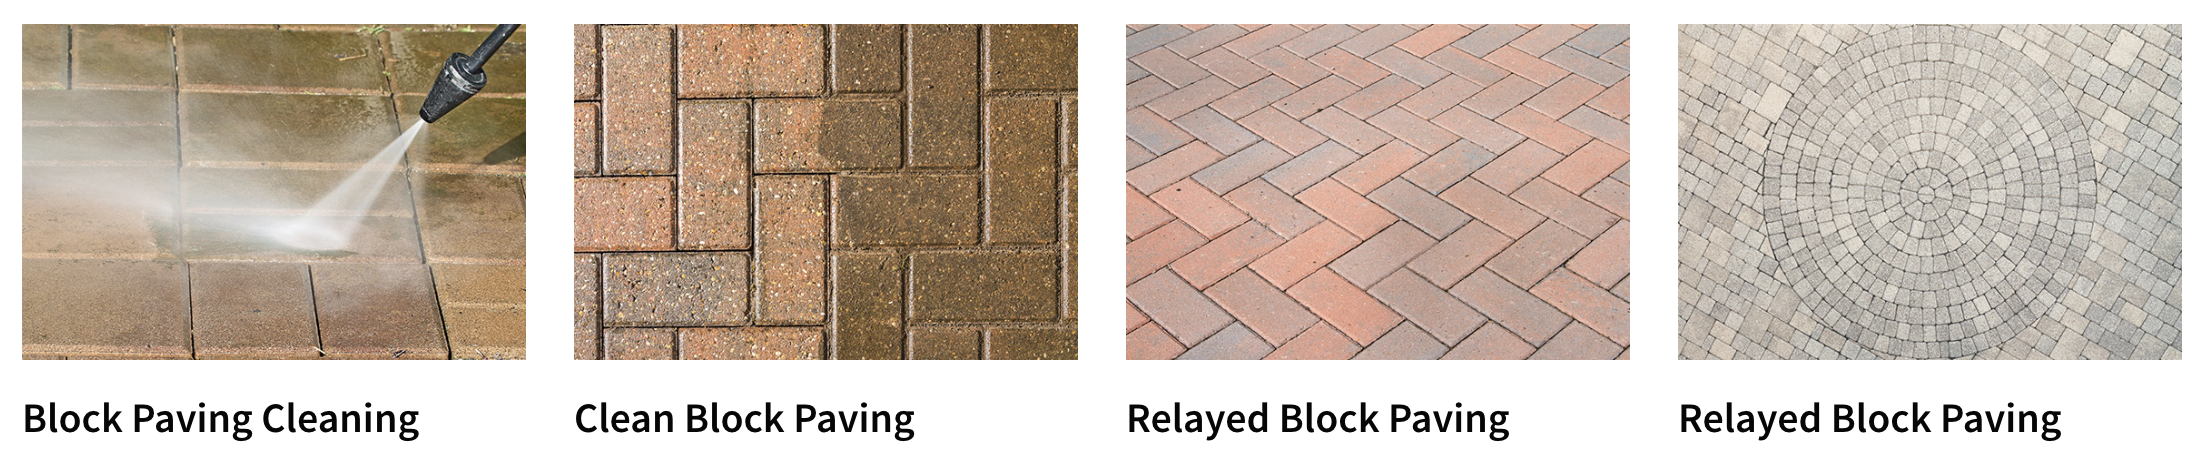 Block Paving Renovation